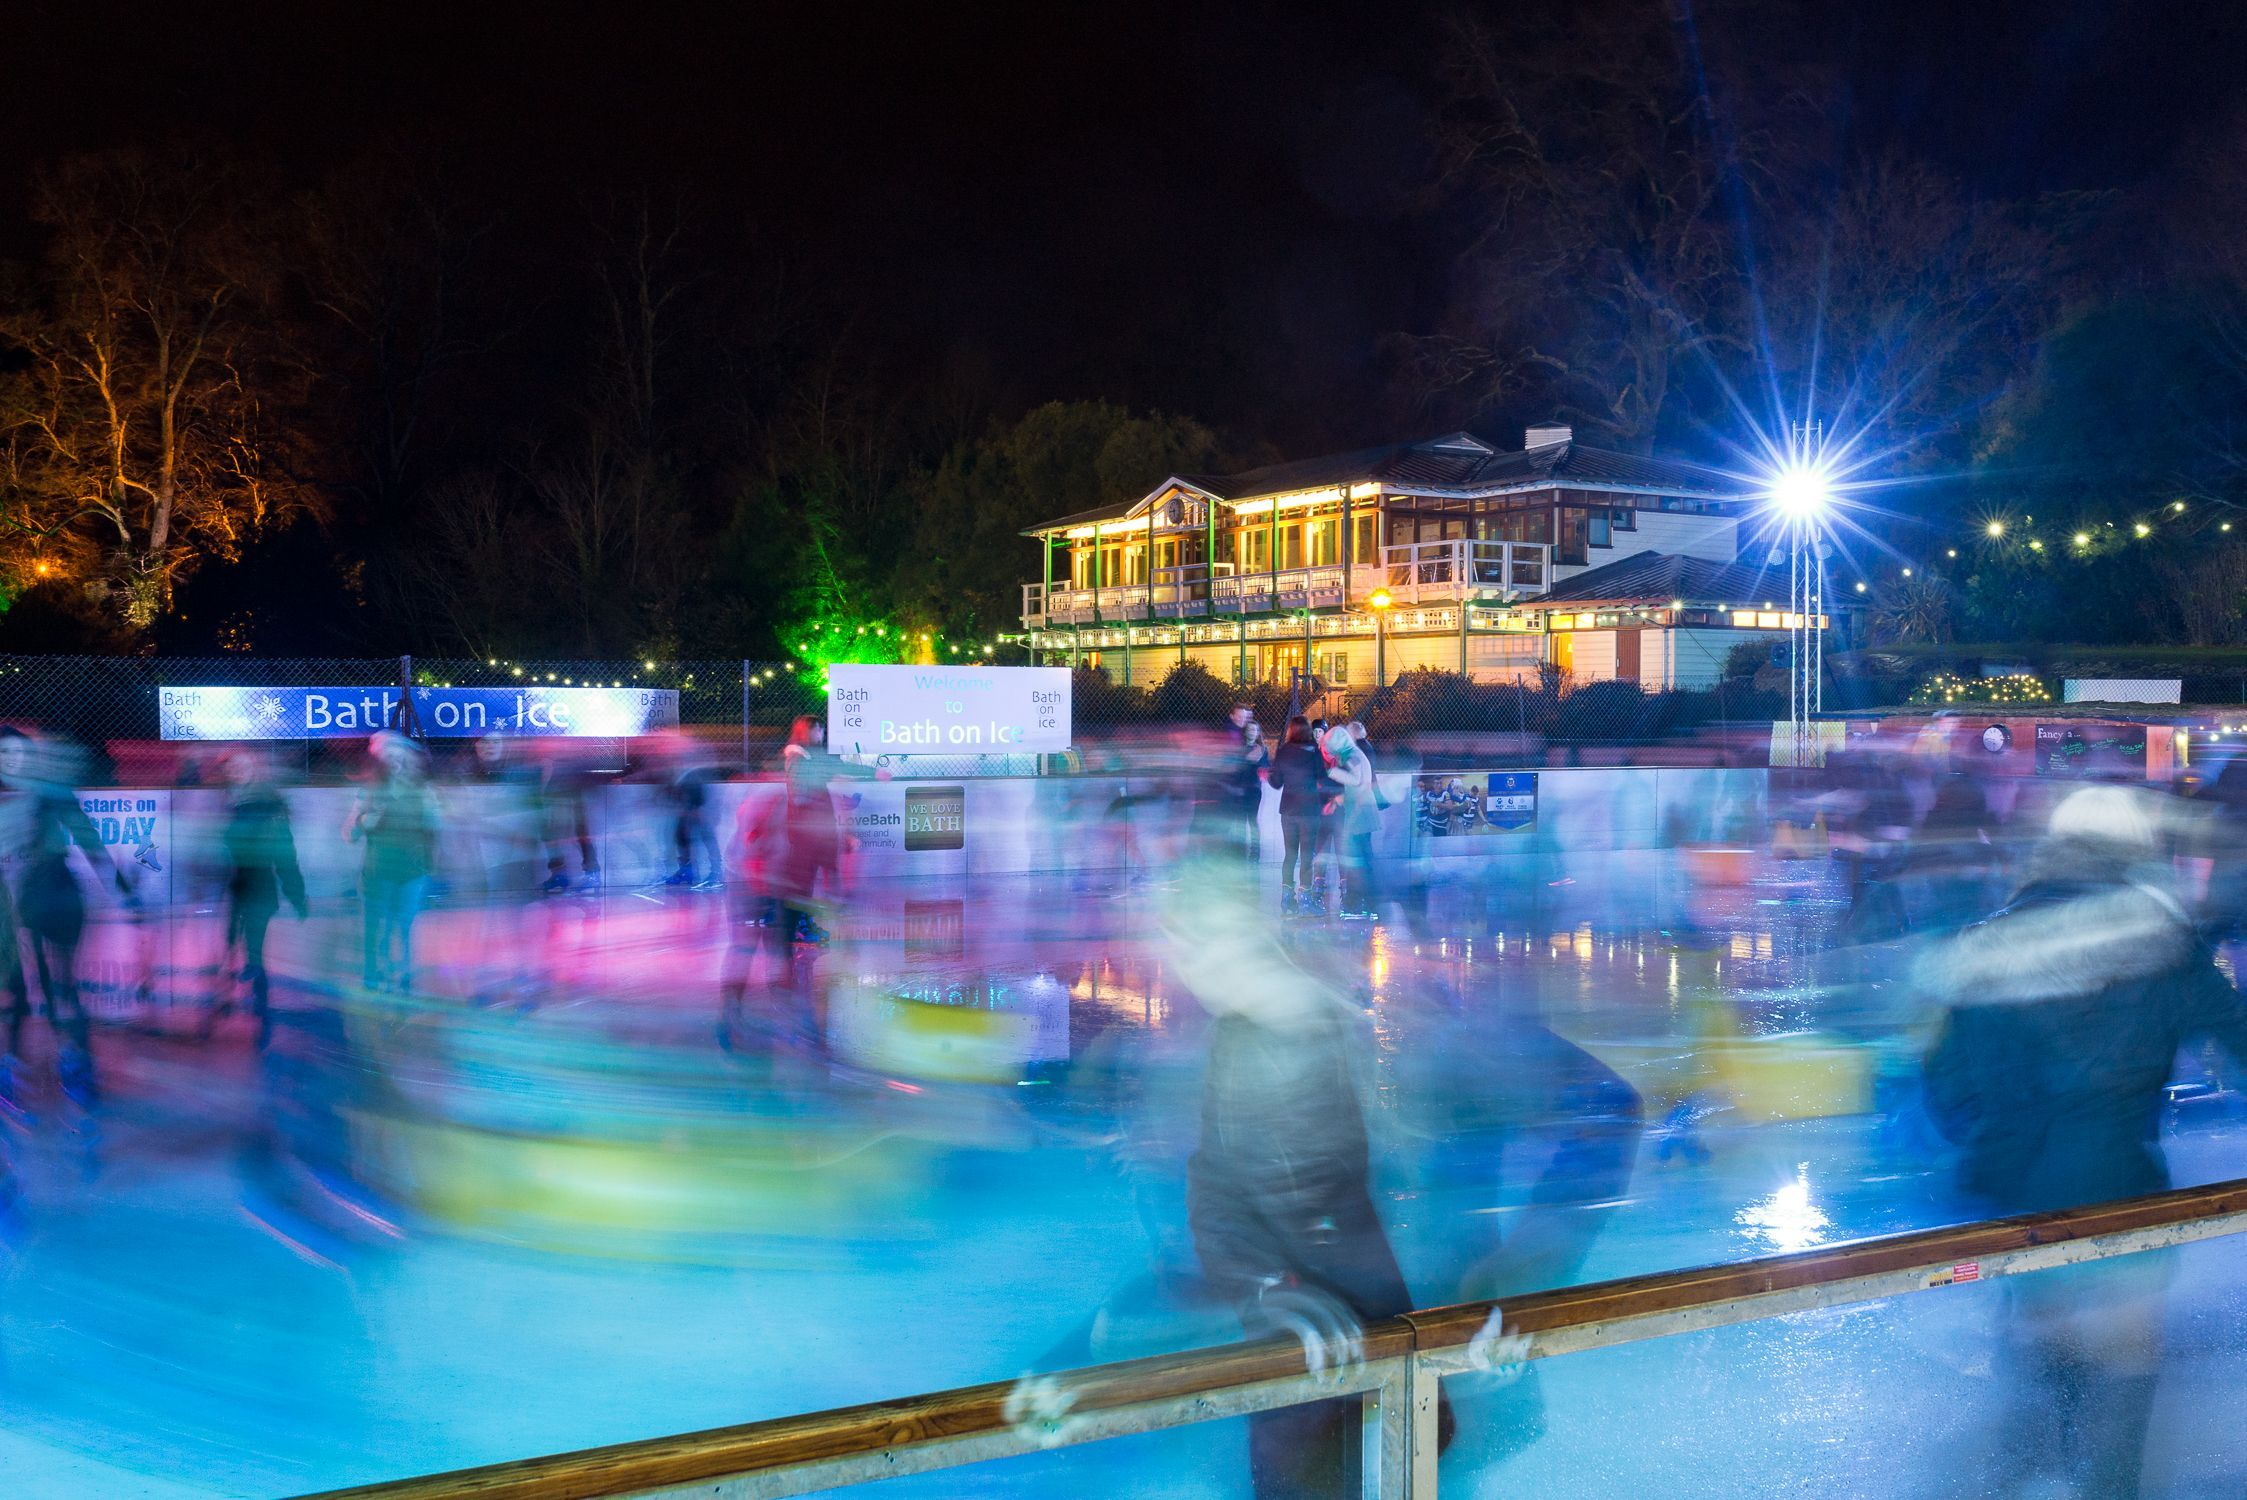 Bath on Ice is a fun way to spend an evening if you are planning Christmas in Bath